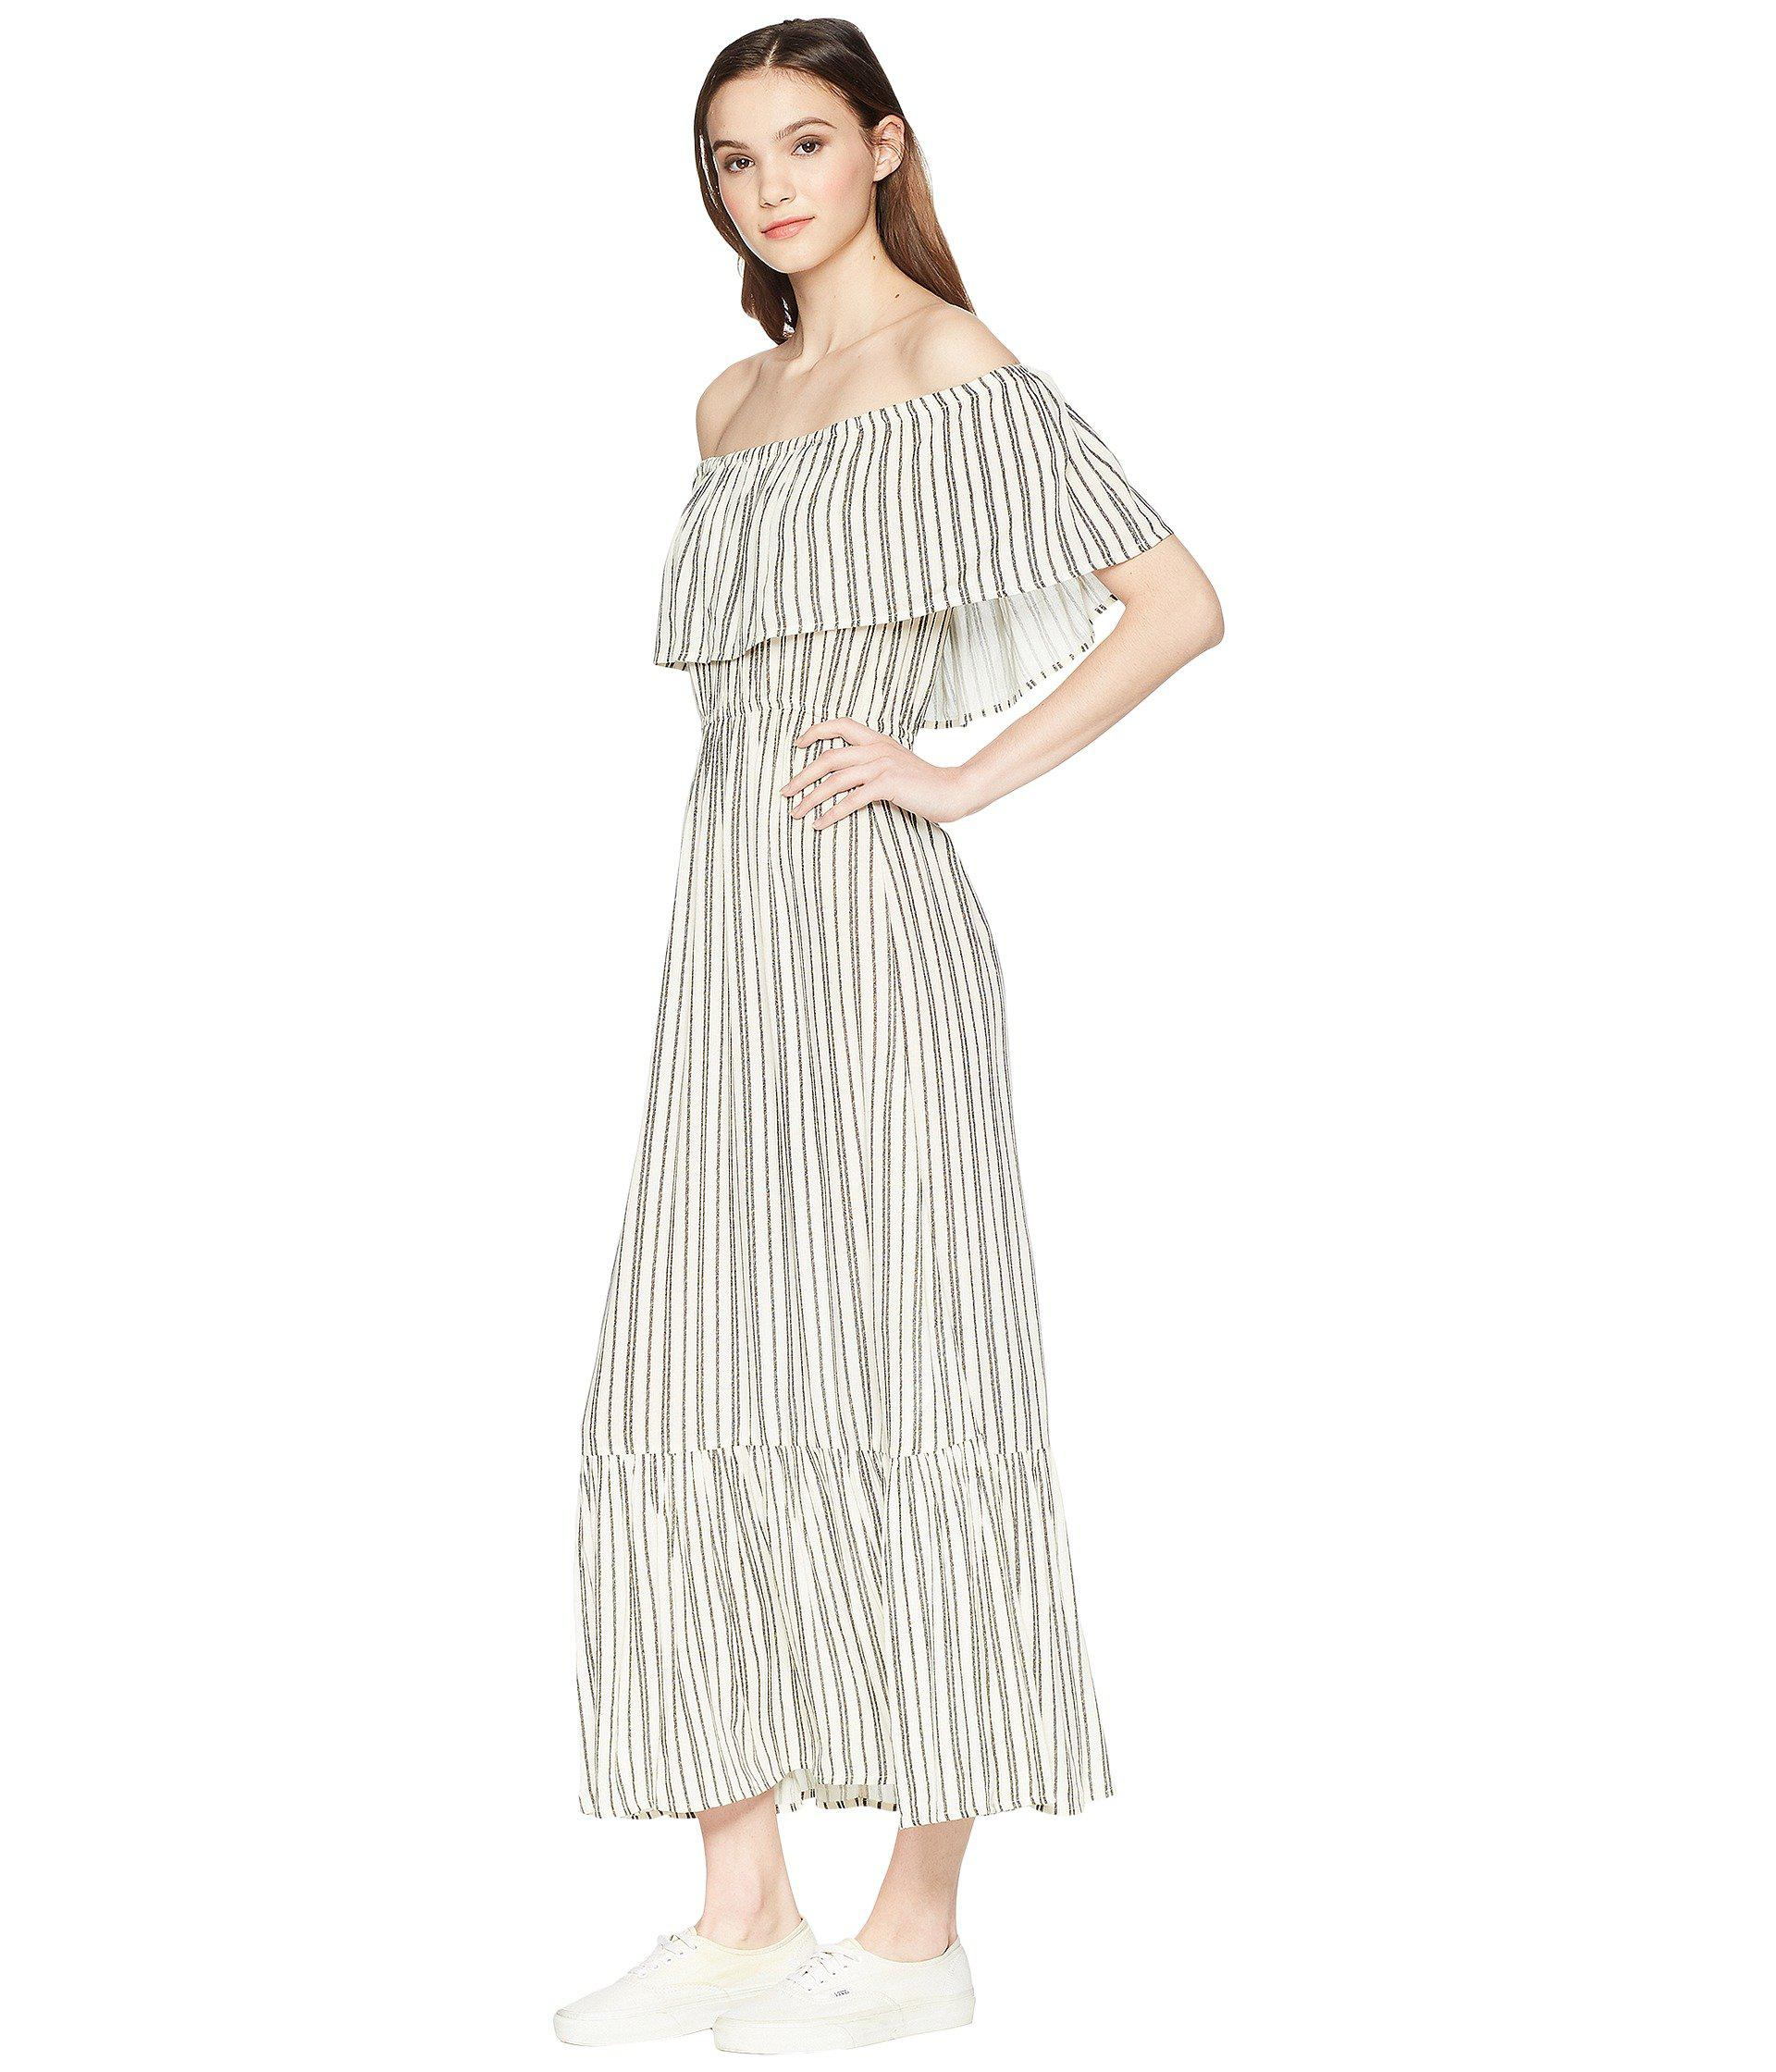 9dec499e8 Billabong Island Vibes Dress in White - Lyst